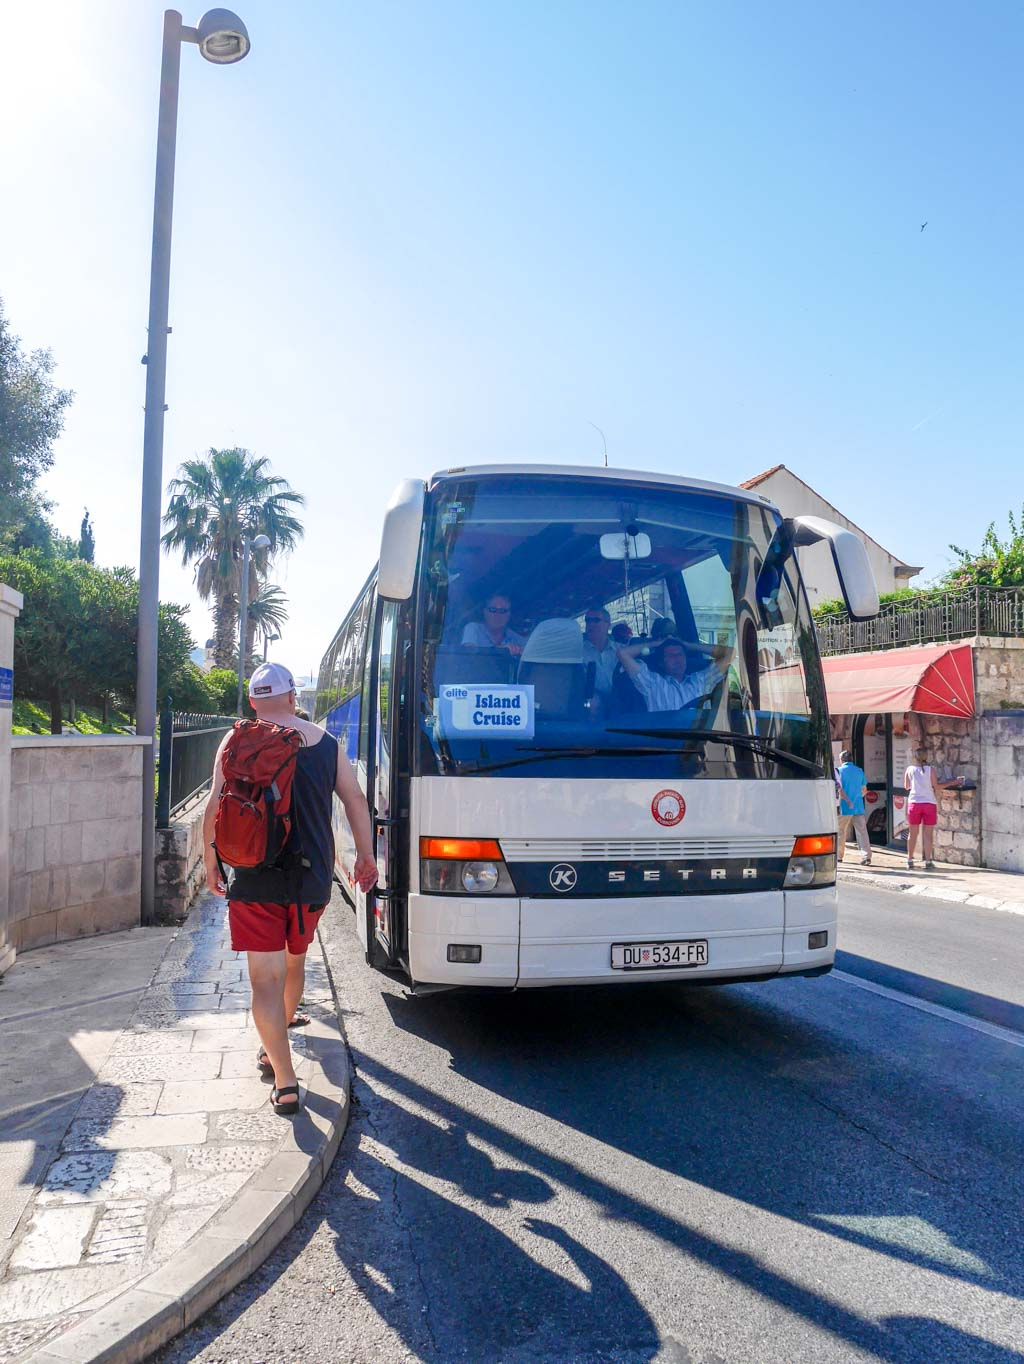 viator bus tour to elaphiti islands dubrovnik croatia